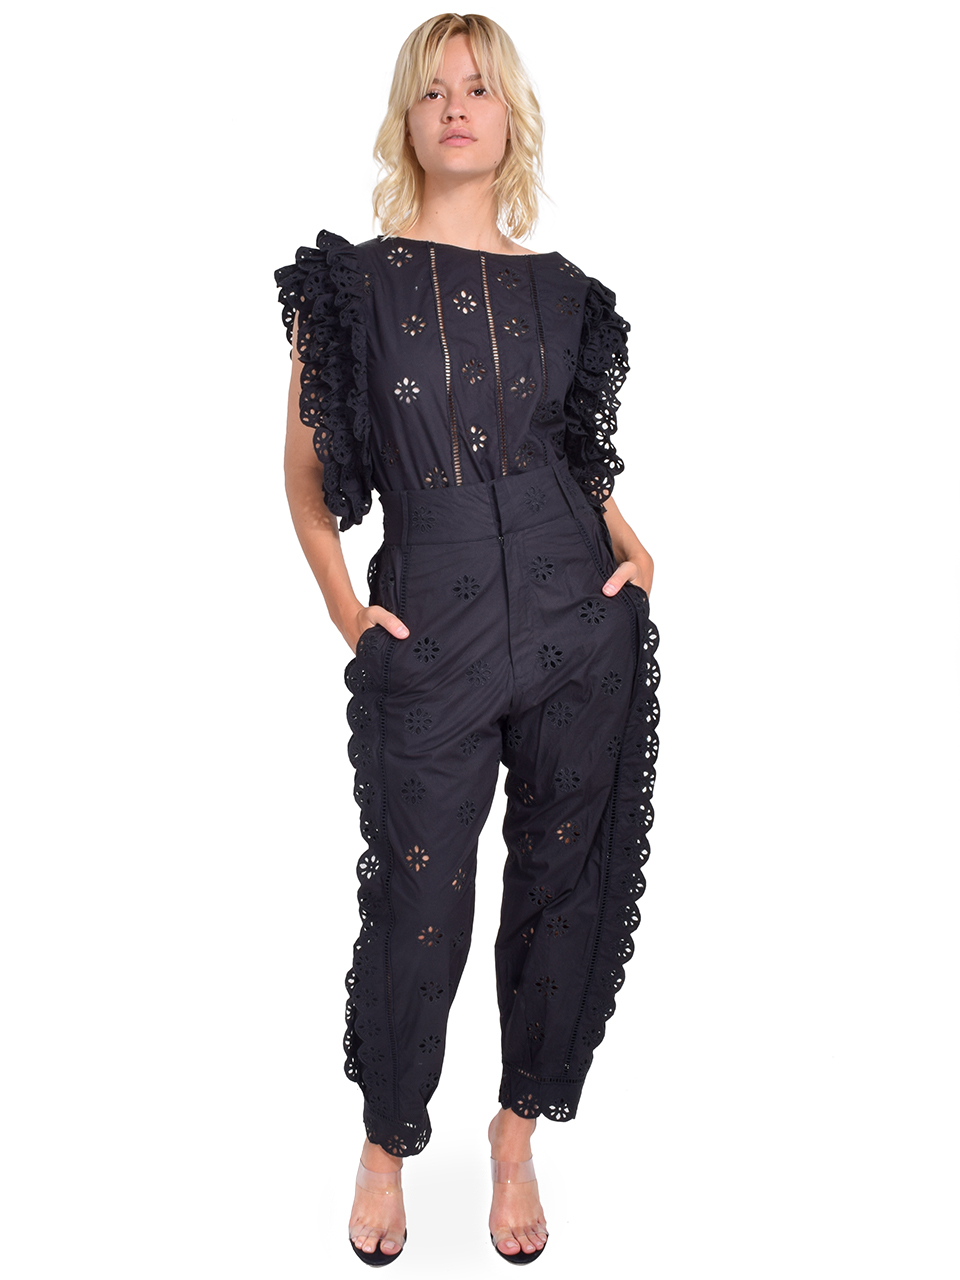 Laurence Bras Peony Eyelet Pants in Black Full Outfit